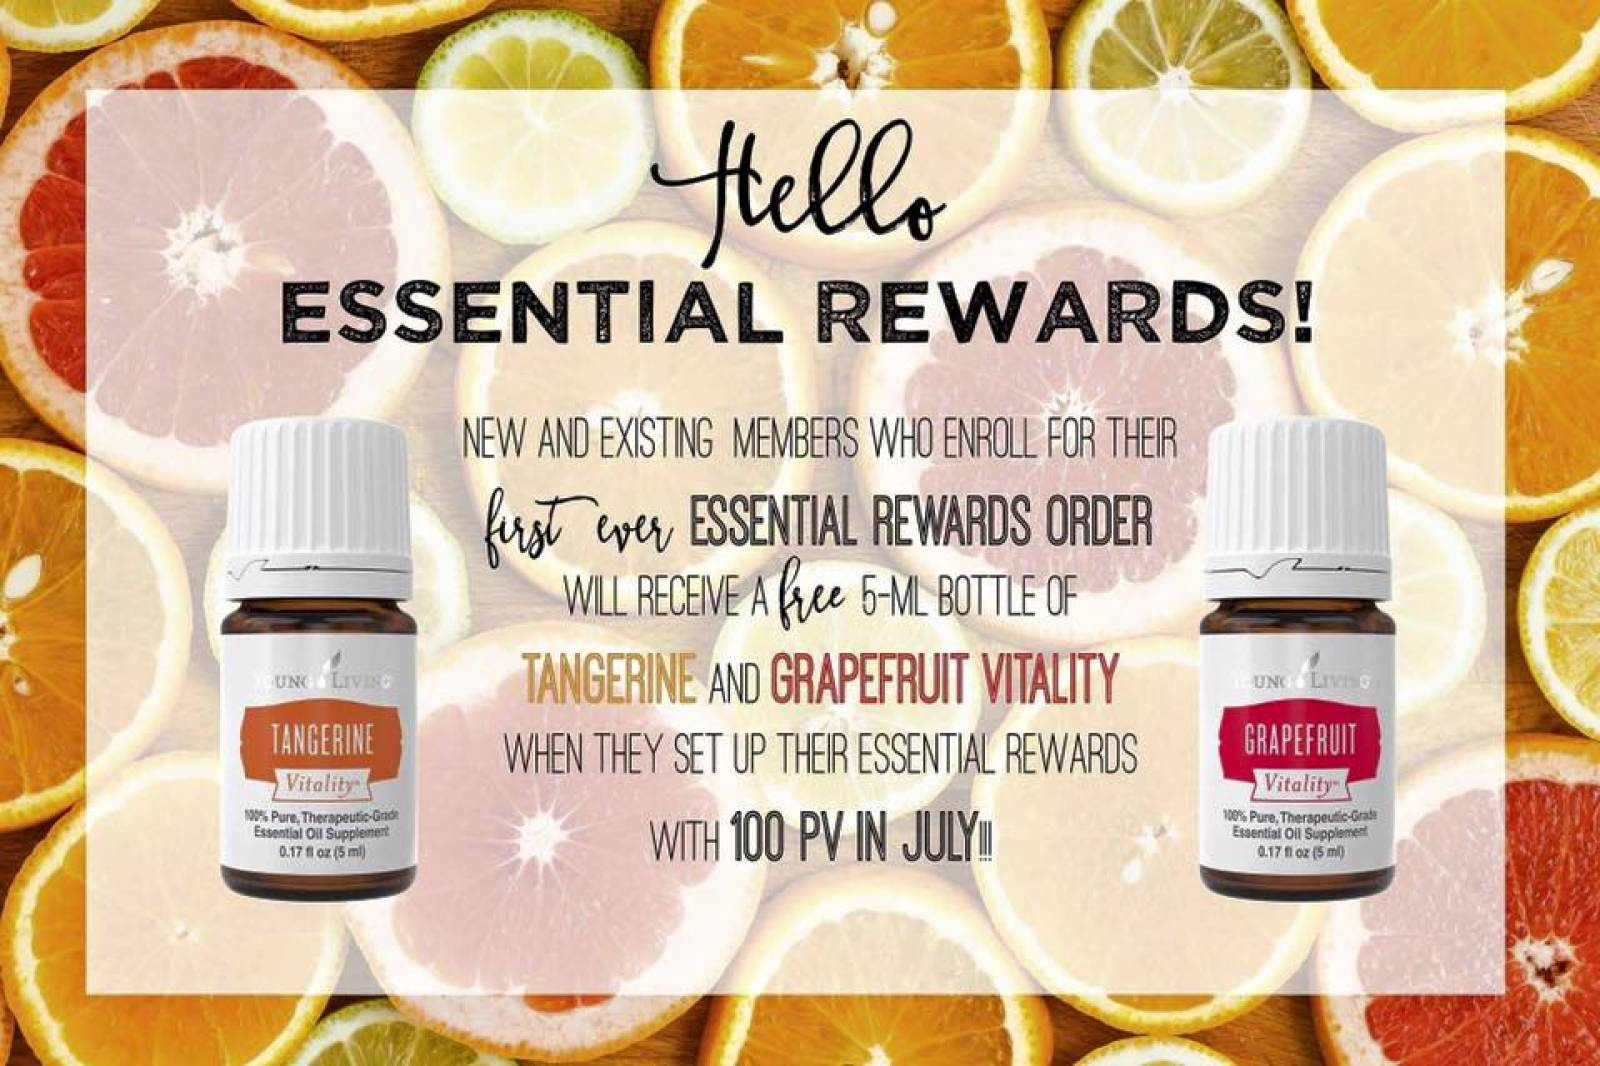 Essential Rewards--Reward!!!